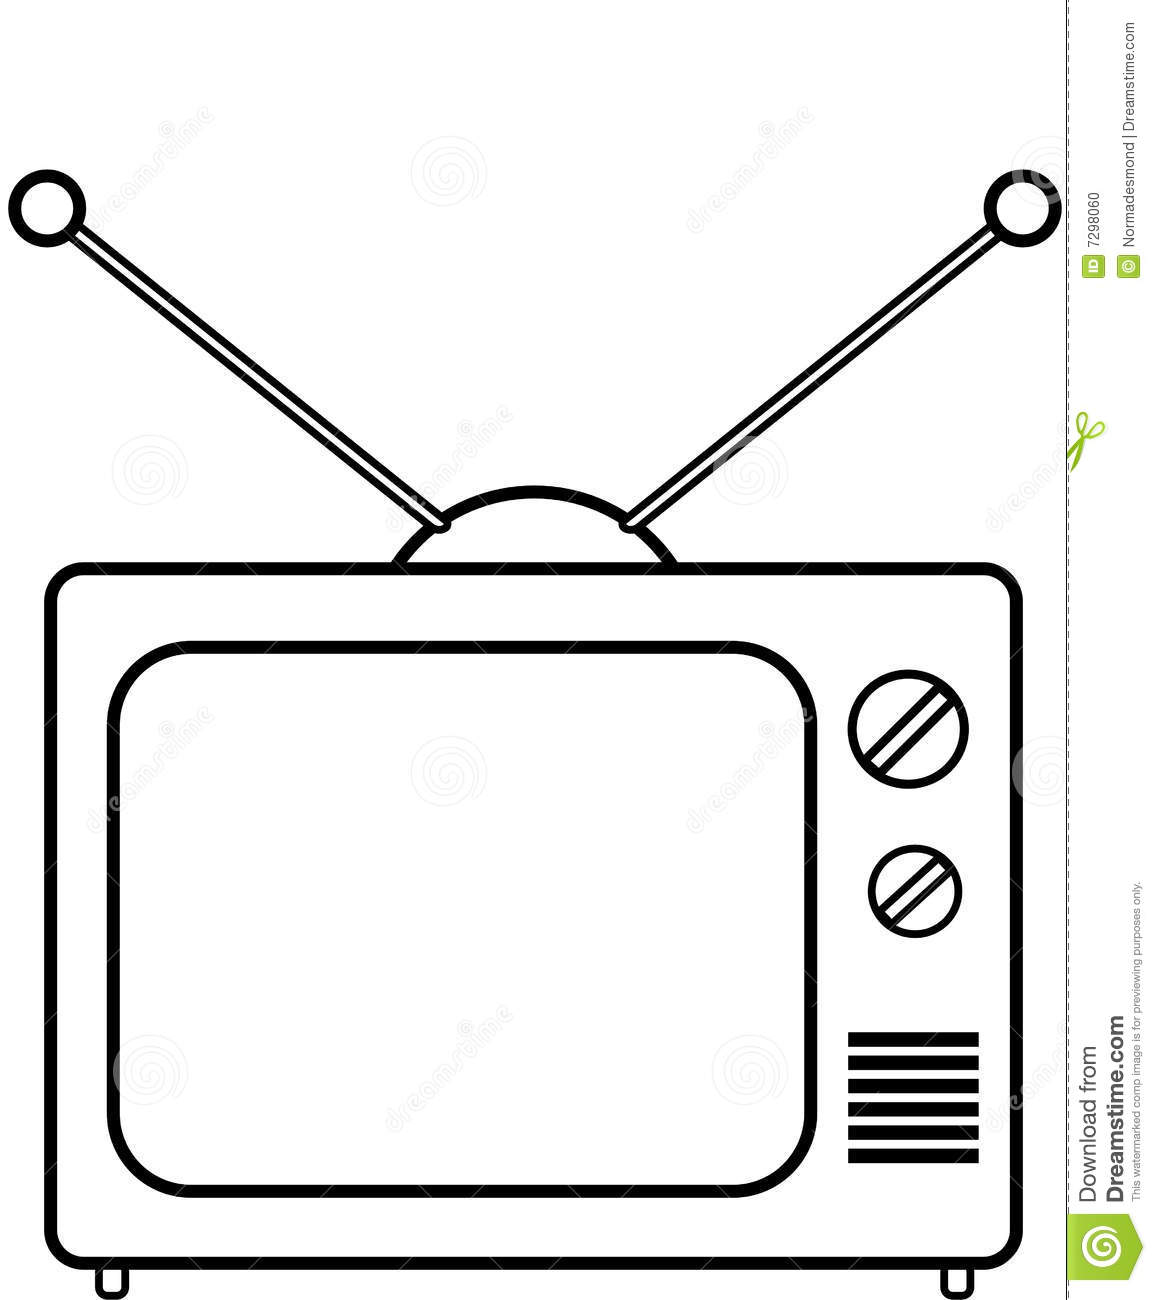 Tv Clipart Colouring Pages #98mcU9 - Clipart Suggest